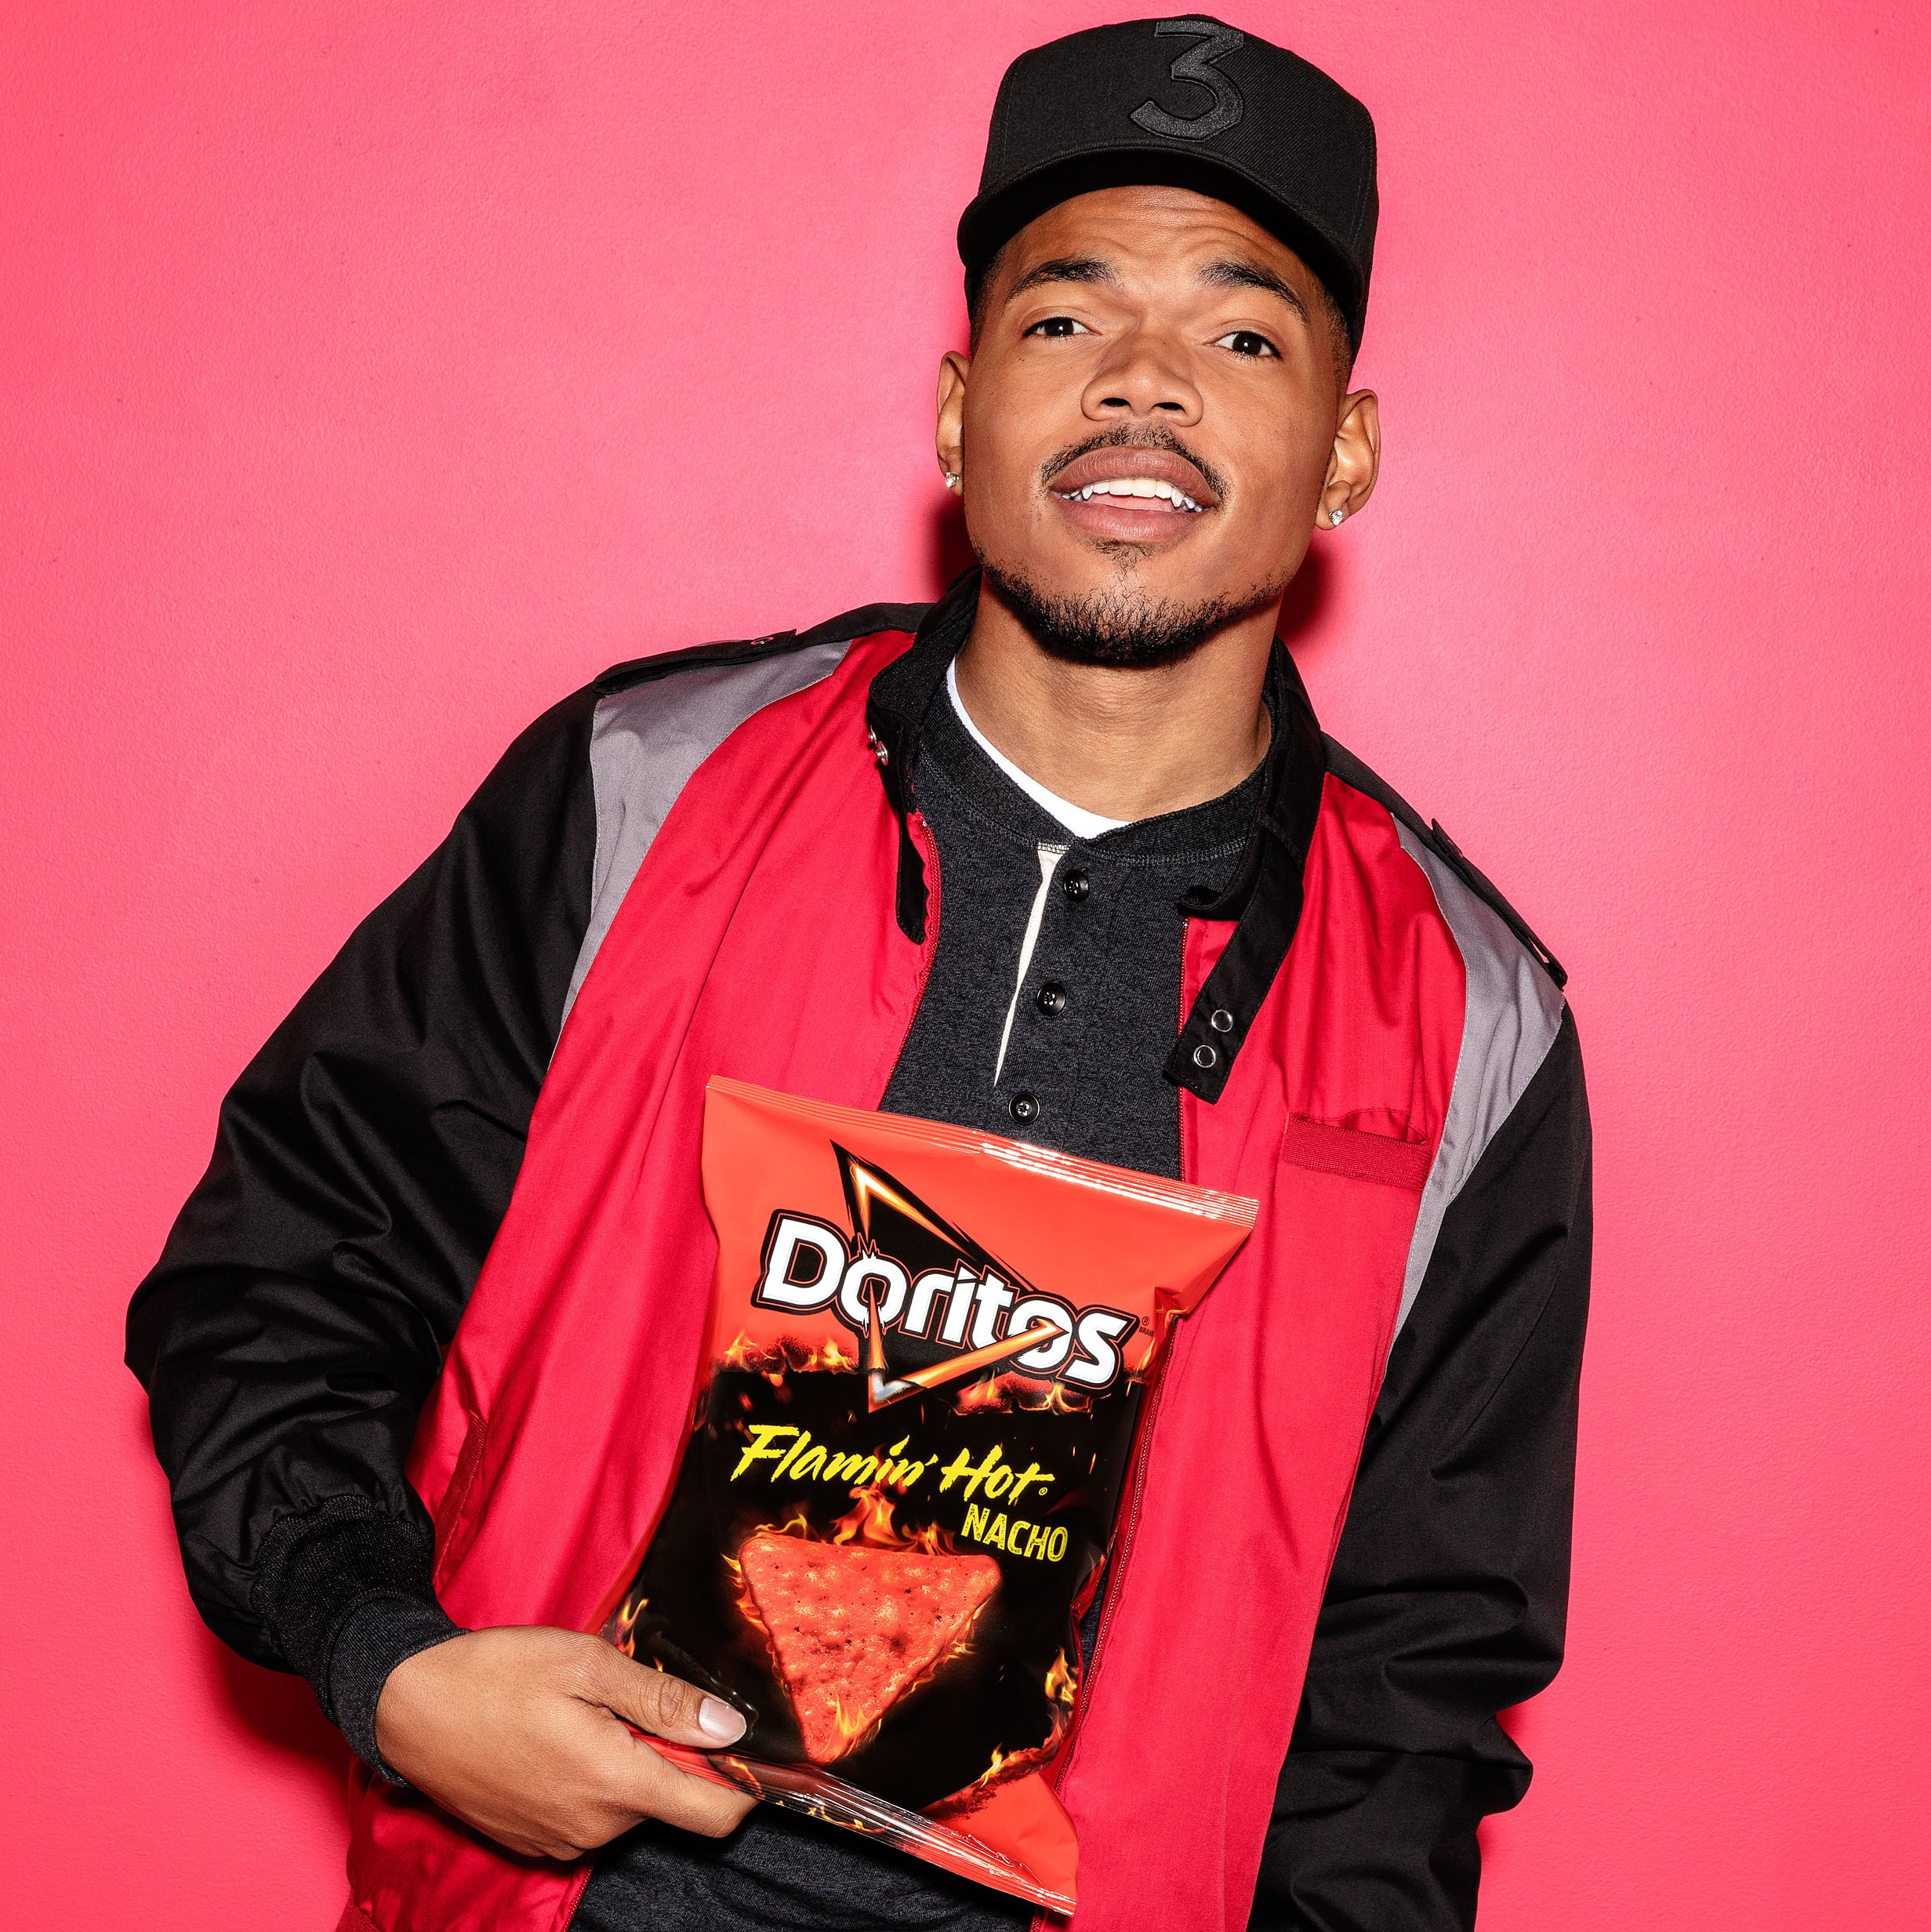 Super Bowl 2019: Will Chance the Rapper Be in a Doritos Commercial?